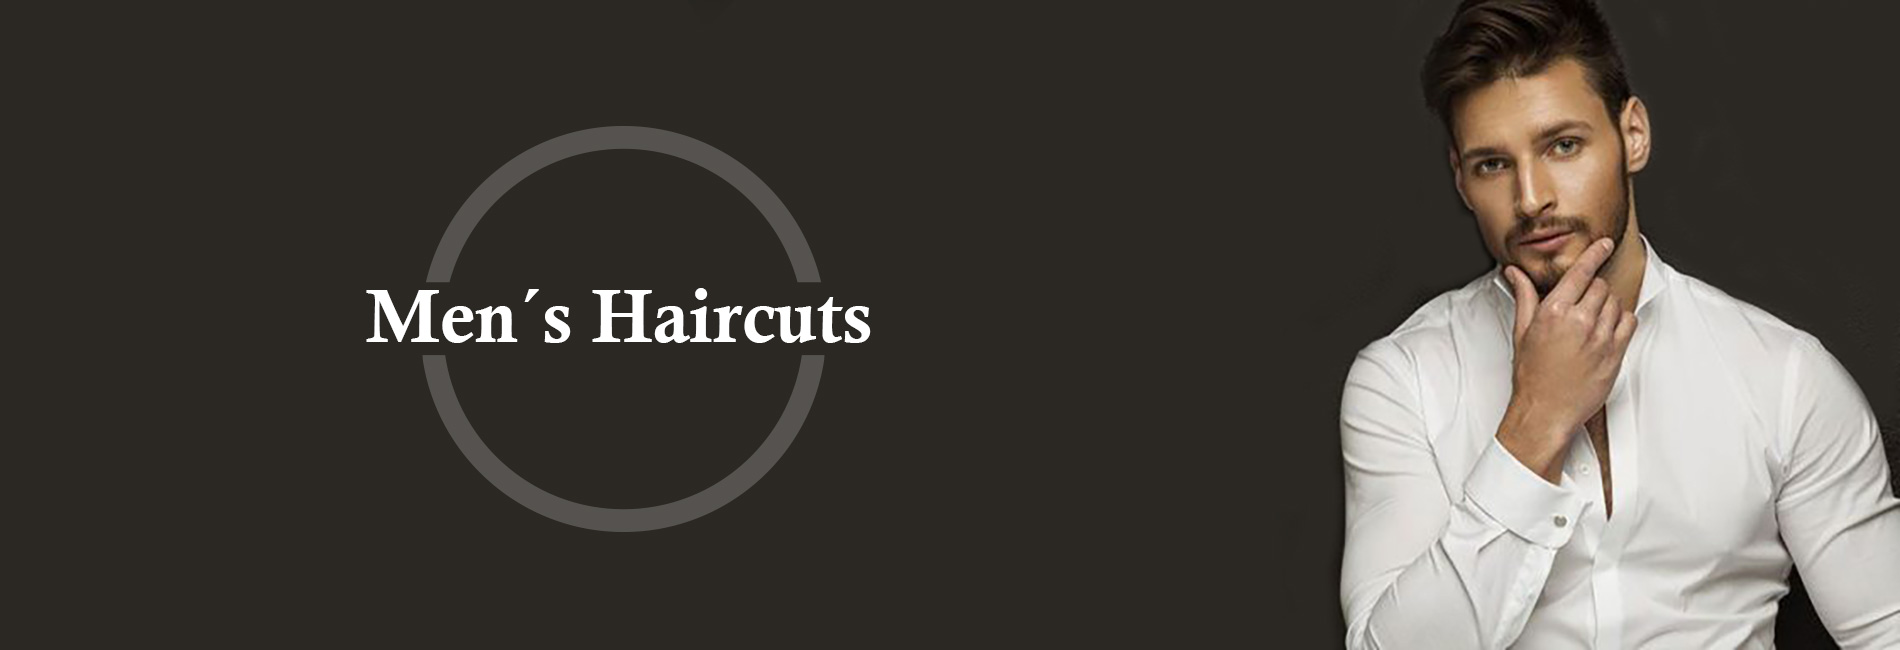 Mens Haircuts My Hair Guru, Hair Colour, Top Hair Salon in Paisley